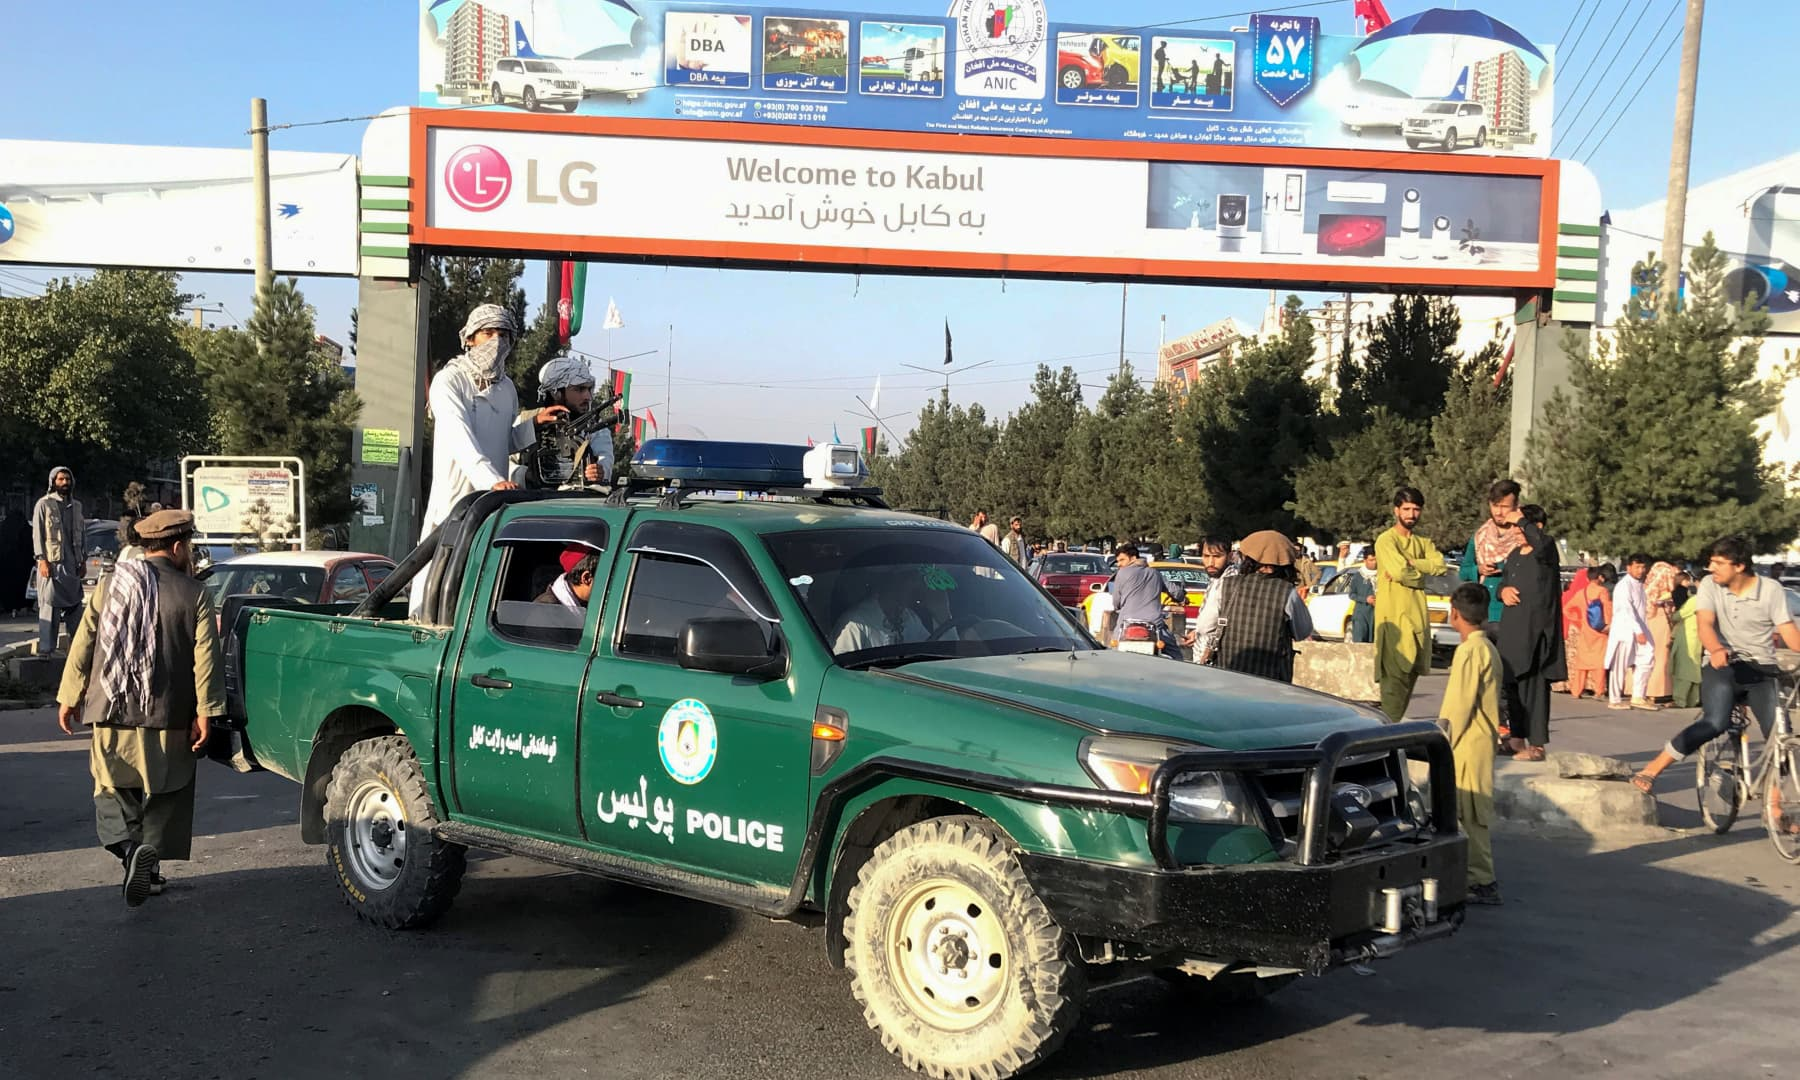 Taliban fighters ride on a police vehicle outside Hamid Karzai International Airport in Kabul, Afghanistan on August 16, 2021. — Reuters